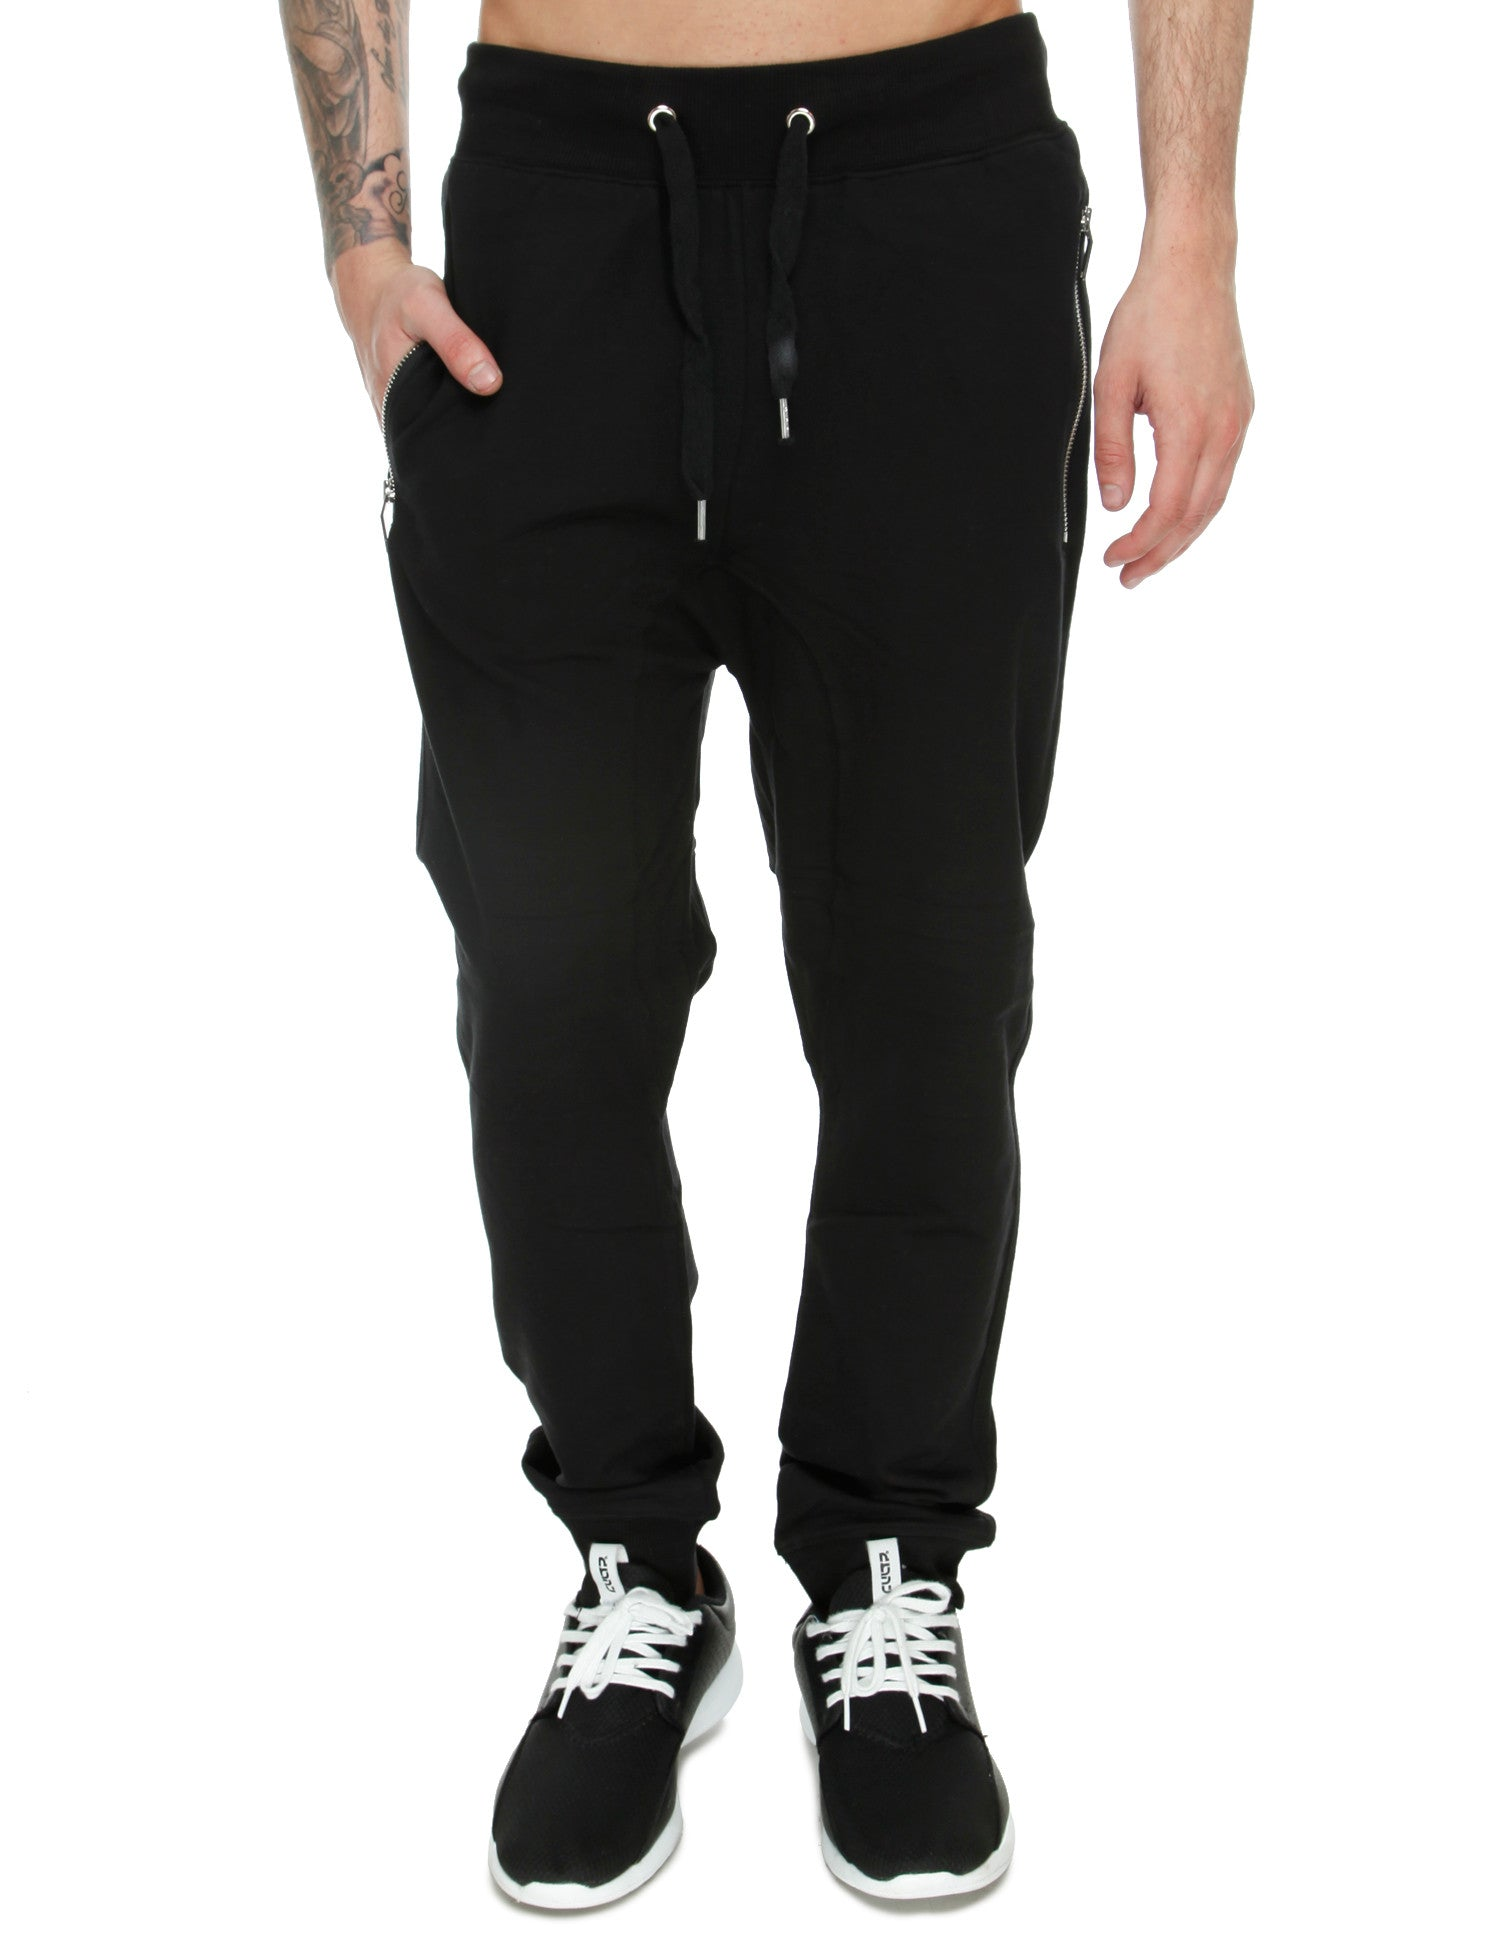 Switch French Terry Sweatpant SPK5116 Black